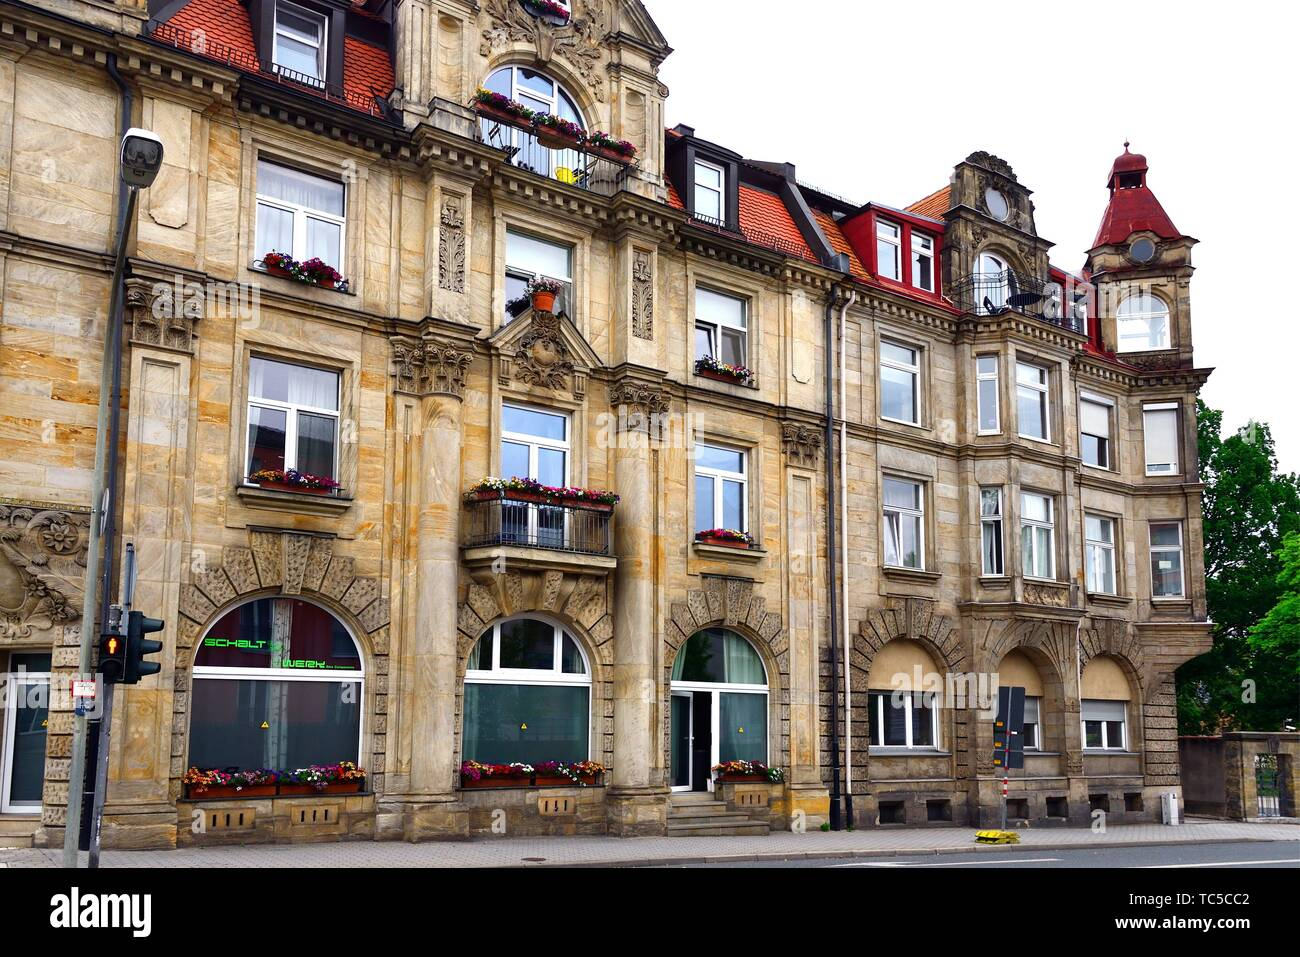 Traditional architecture - townhouse at Wilhelminenstrasse, Bayreuth - capital of Upper Franconia, Bavaria, Bayern, Germany, Europe - Stock Image